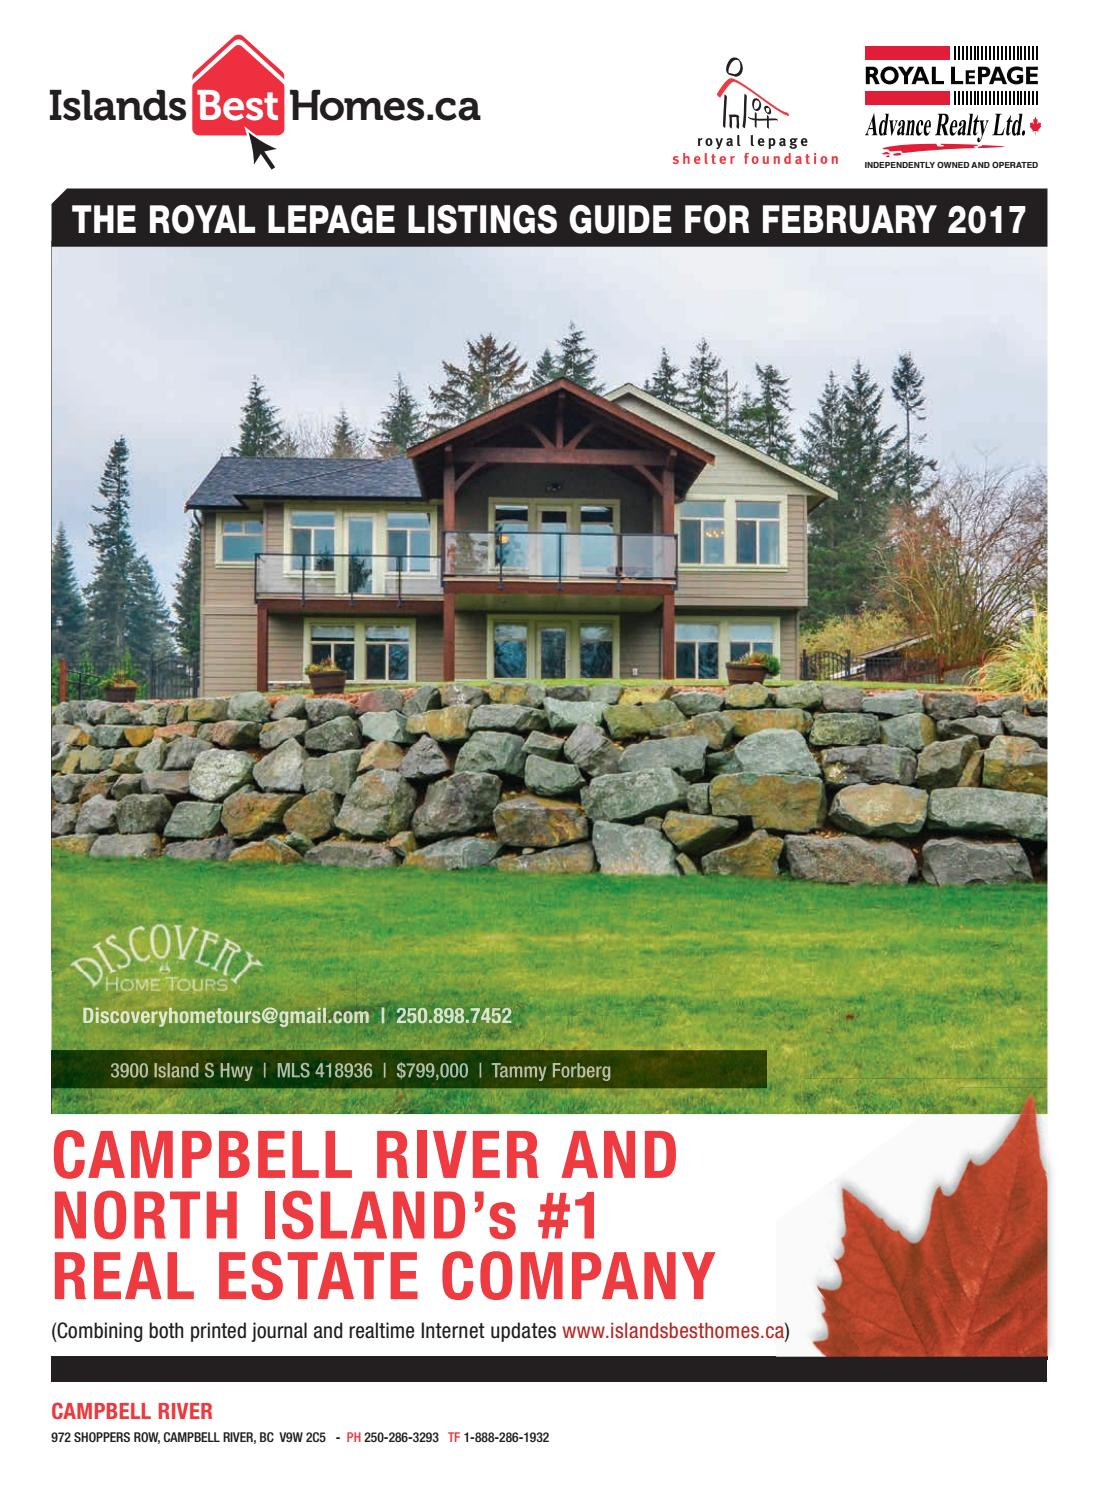 latest listing guide royal lepage advance realty latest listing guide